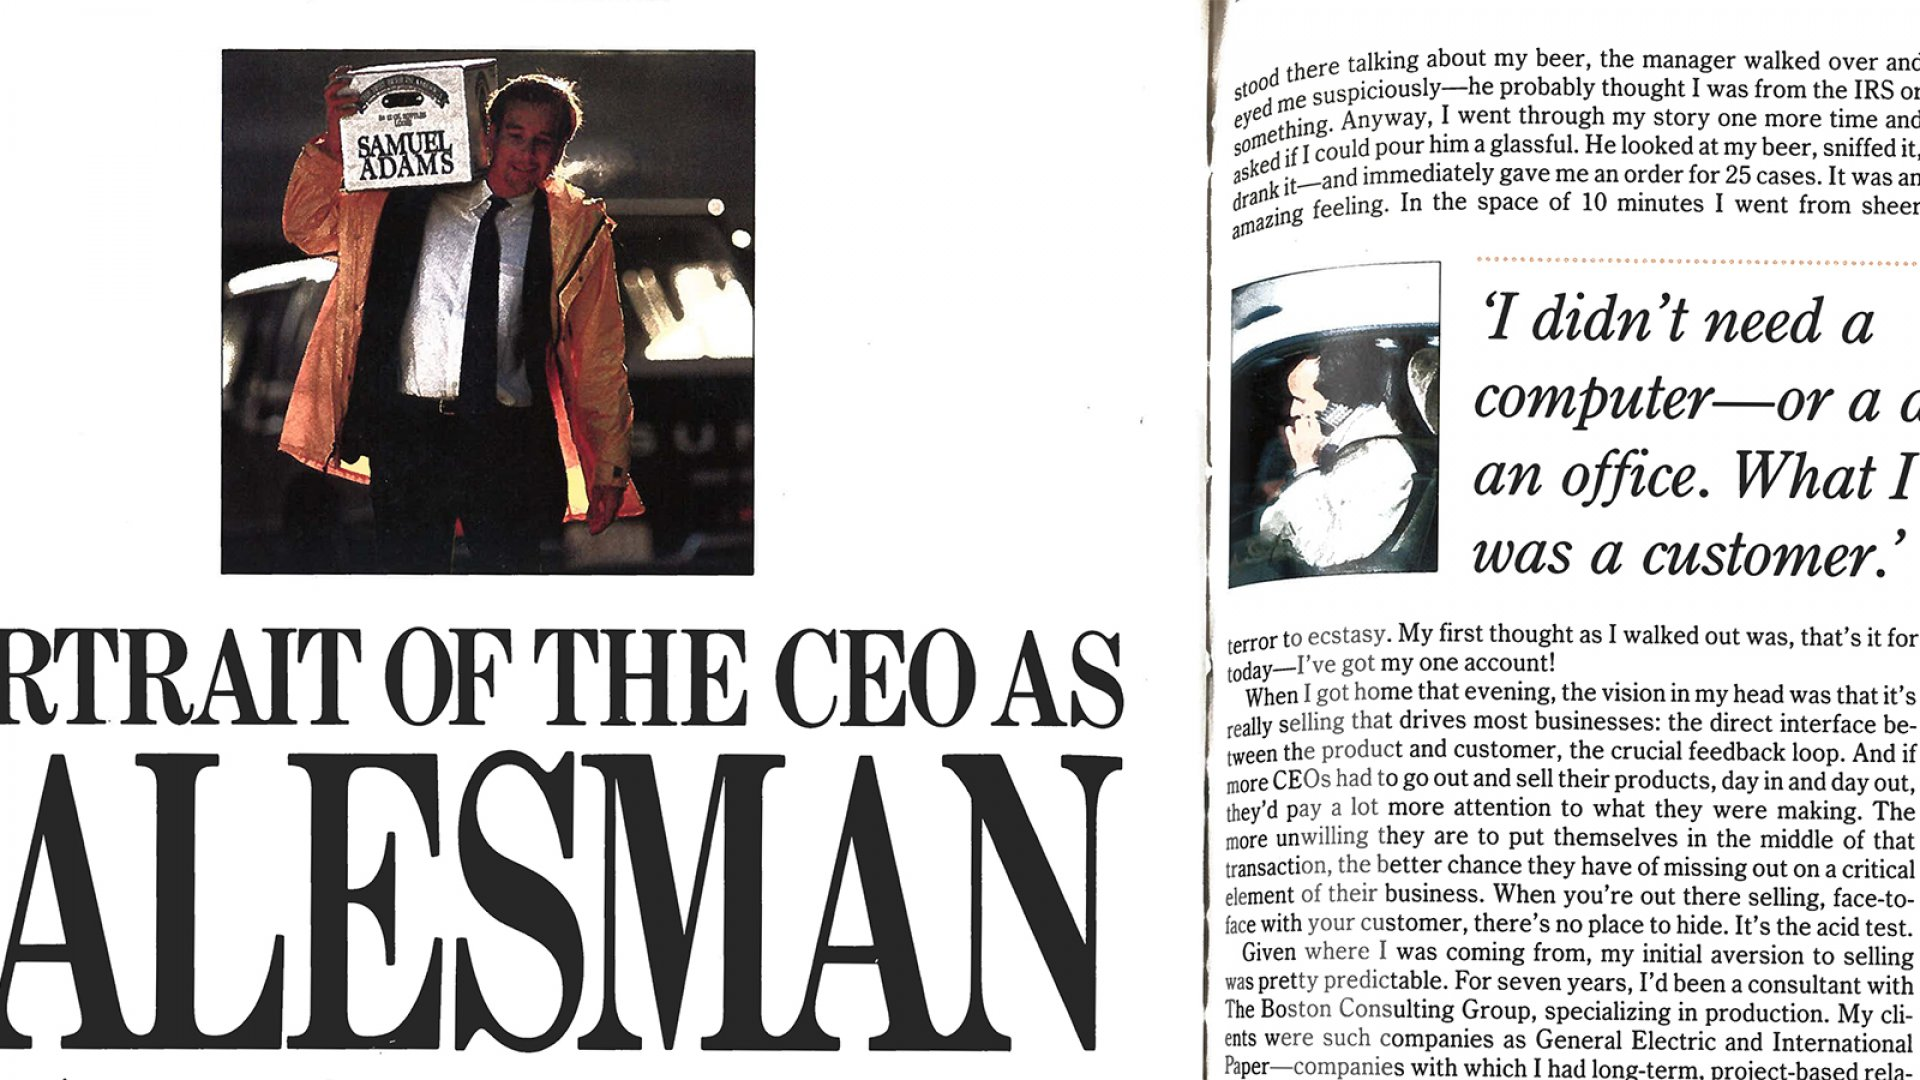 Boston Beer's Jim Koch: Portrait of the CEO as Salesman (1988 Story)